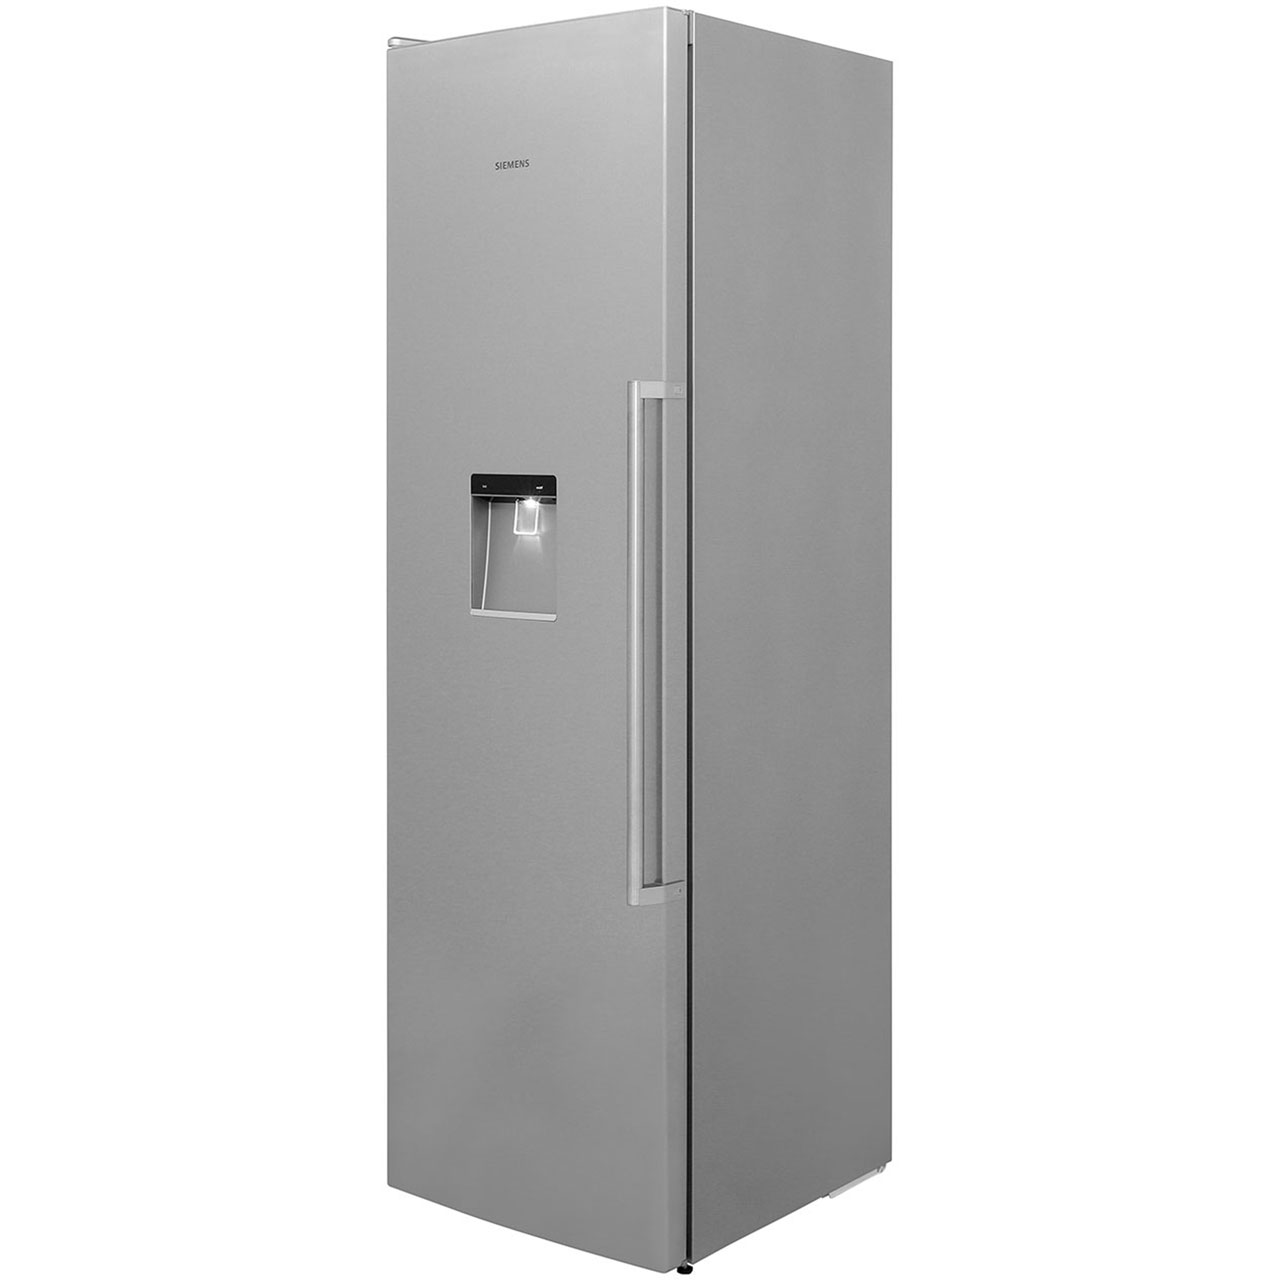 Siemens IQ 700 KS36WPI30 Fridge Stainless Steel